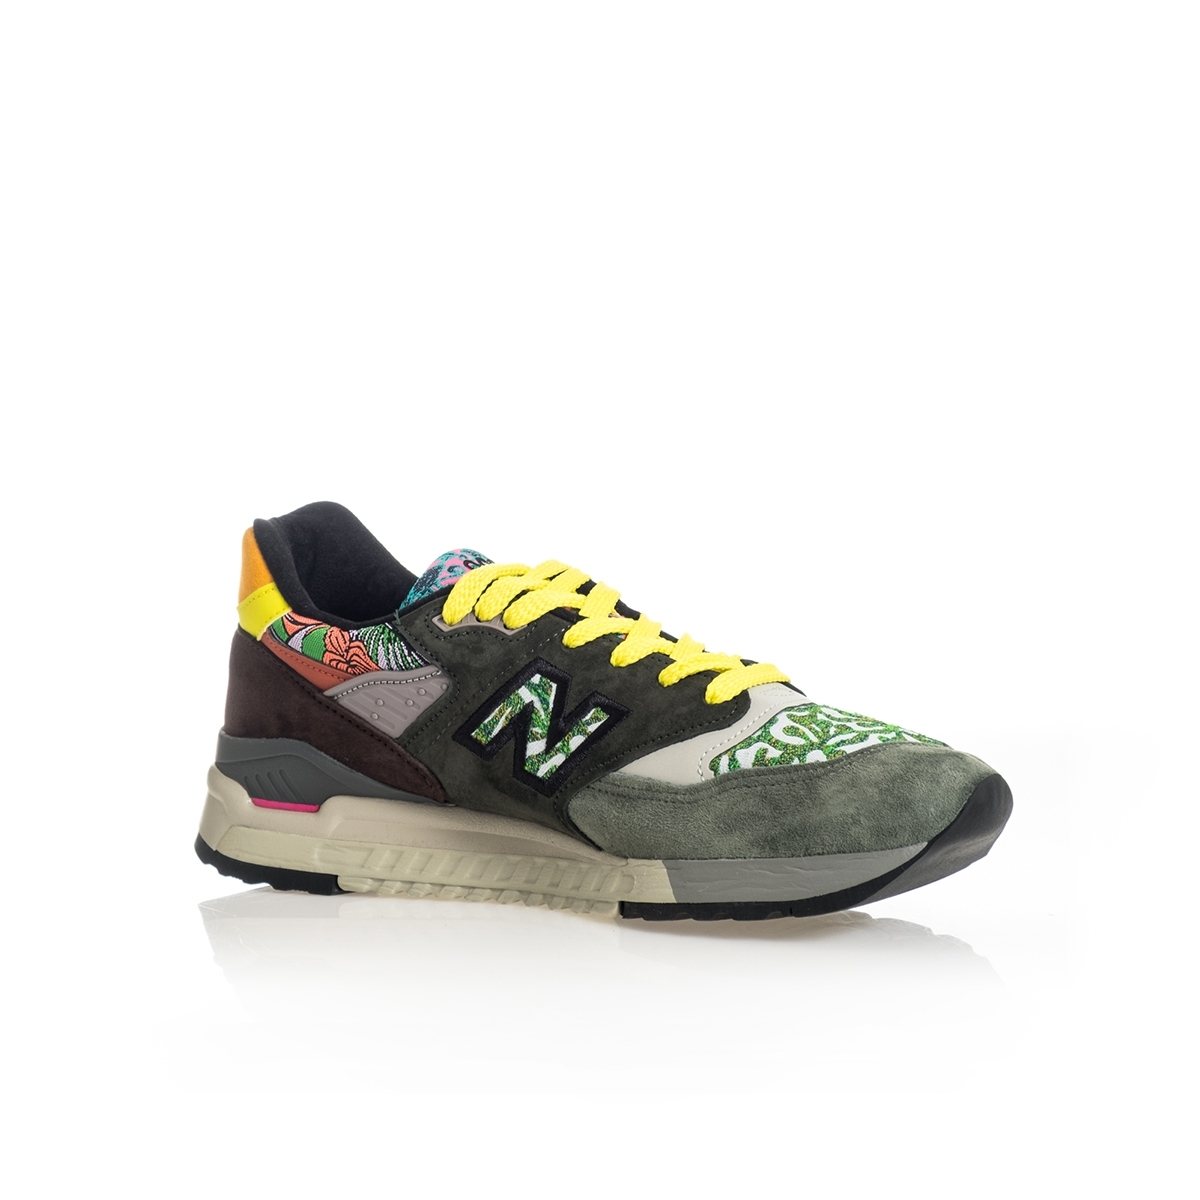 SNEAKERS UOMO NEW BALANCE LIFESTYLE 998 M998AWK MADE IN USA GREEN image 3